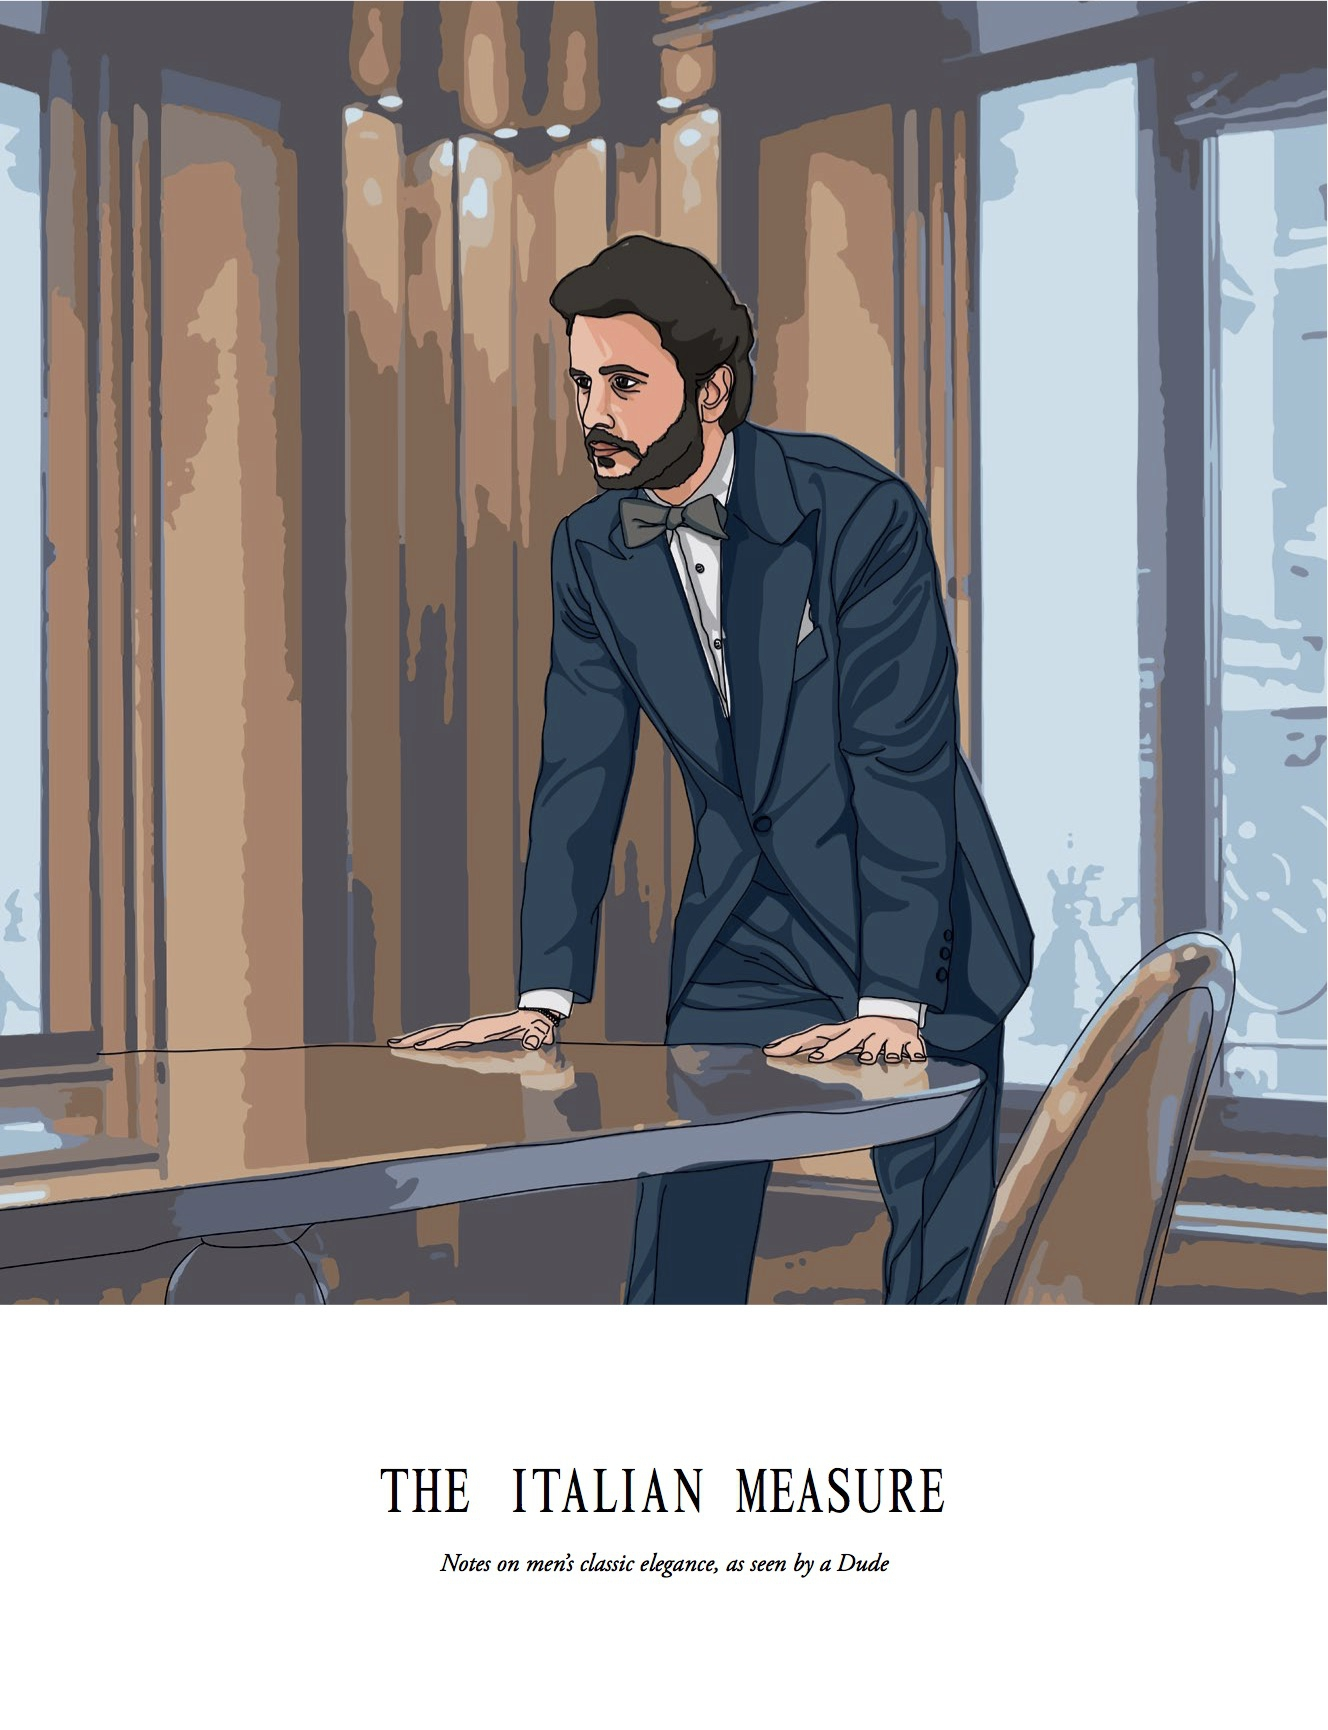 The Italian Measure Notes on men's classic elegance, as seen by a Dude